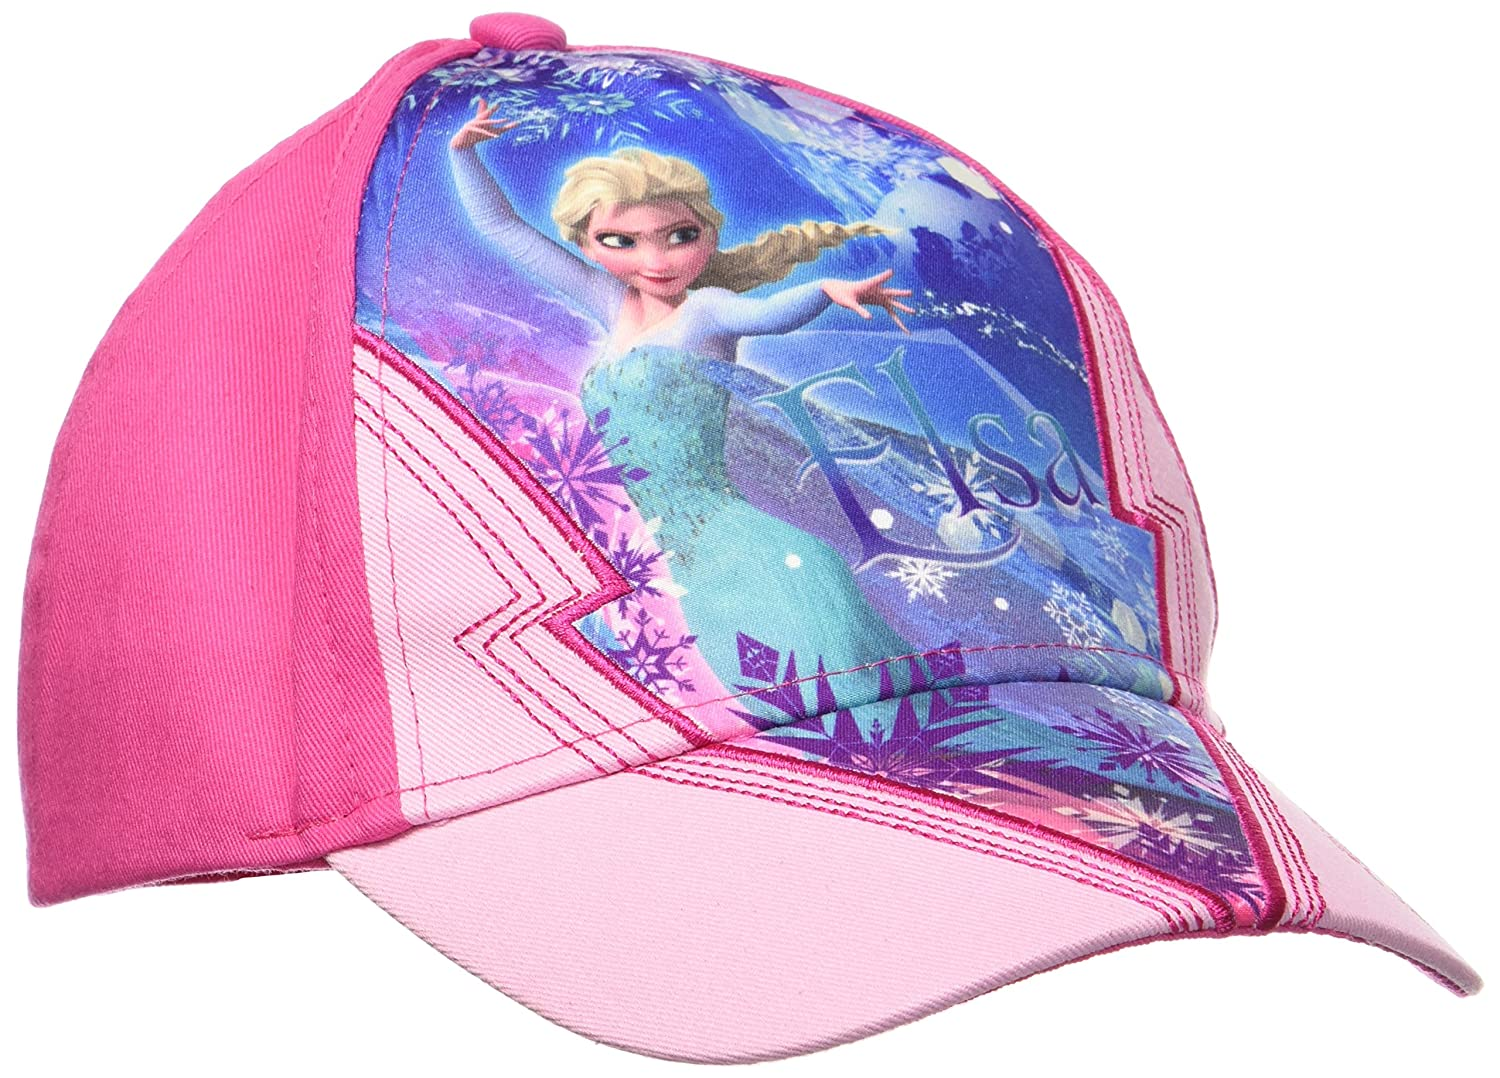 Disney Girl's Frozen Cap Disney Girl's Frozen Cap Pink EP4036